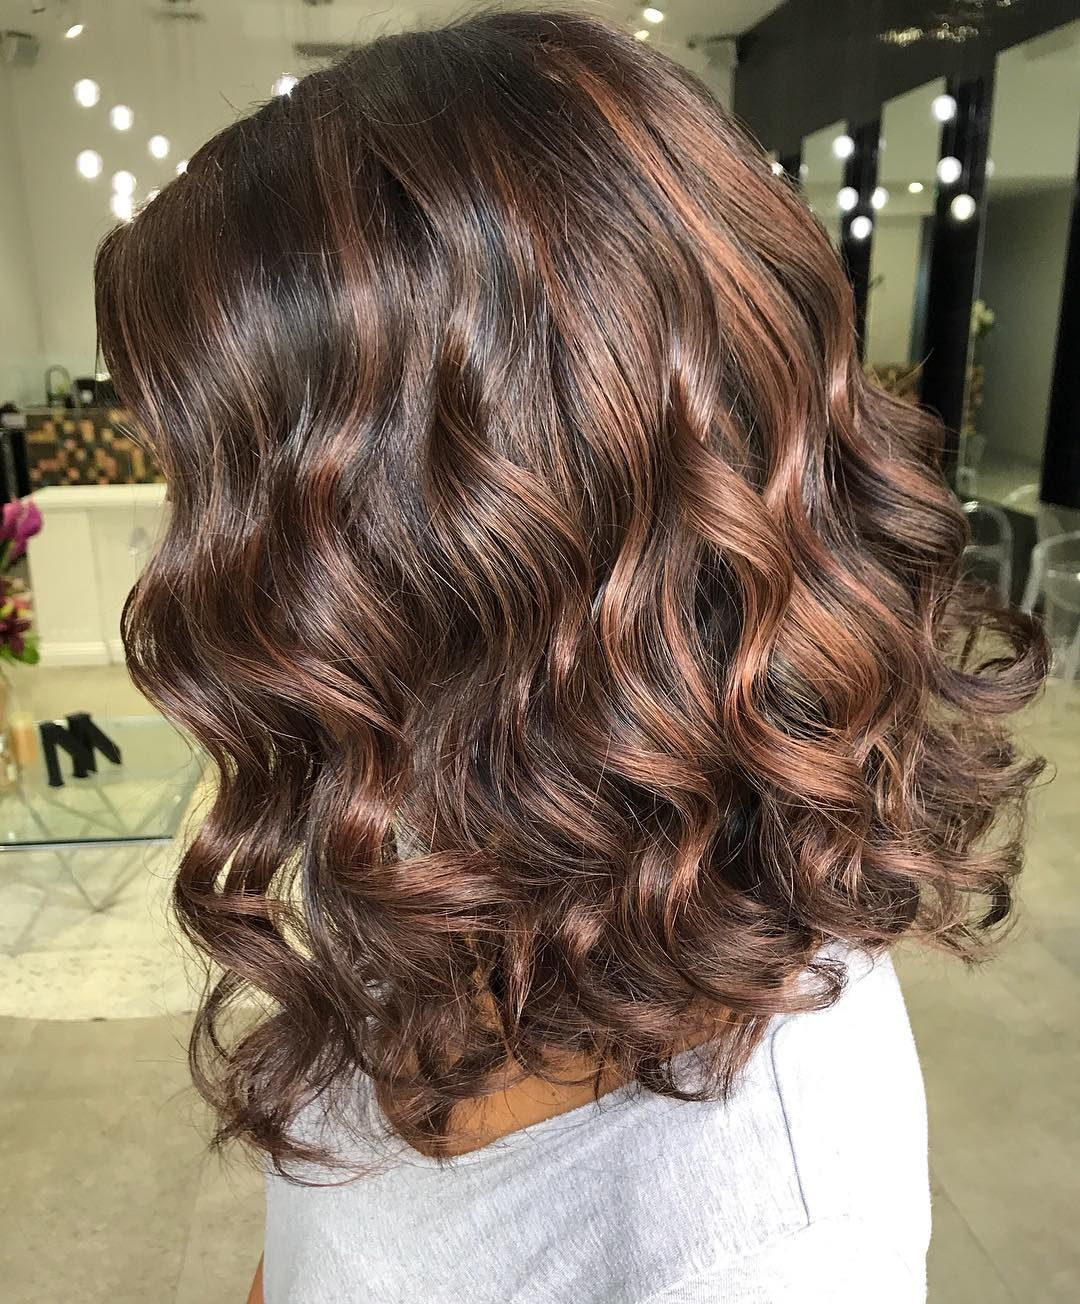 Love This Curly Lob Styled By Dodiejayhair Curly Lob Lob Styling Hair